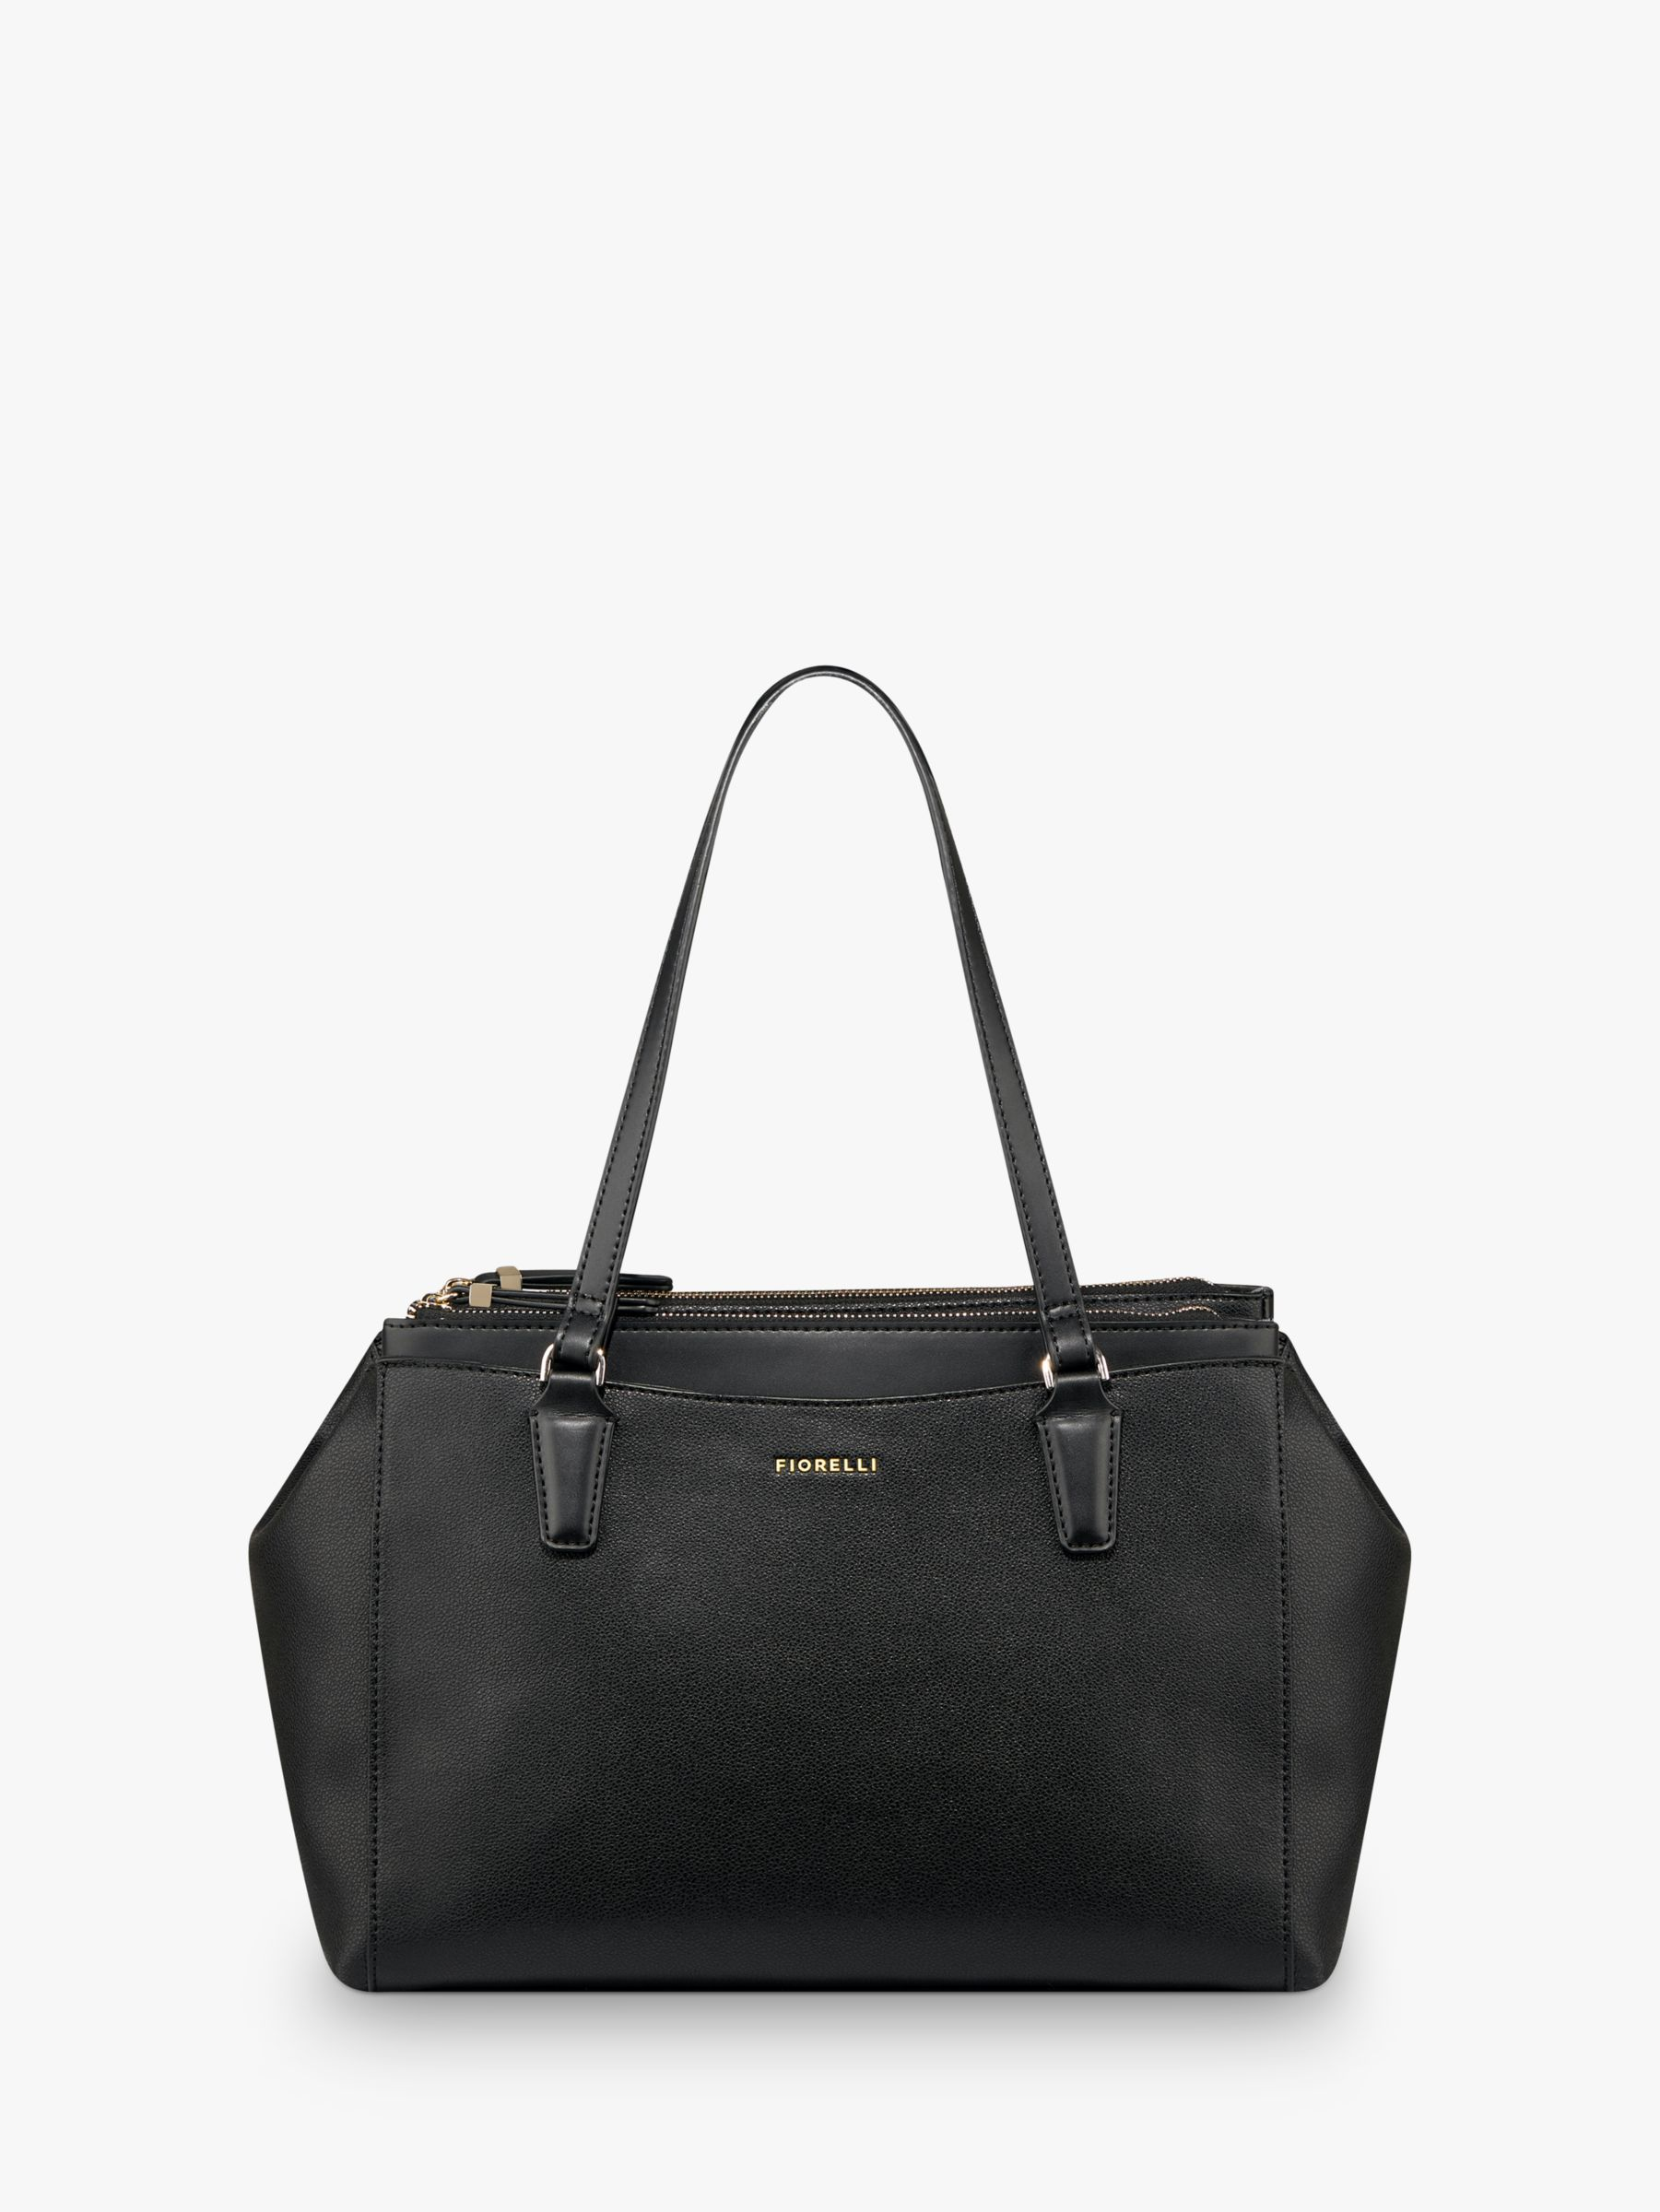 Fiorelli Fiorelli Ariana Shoulder Bag, Black